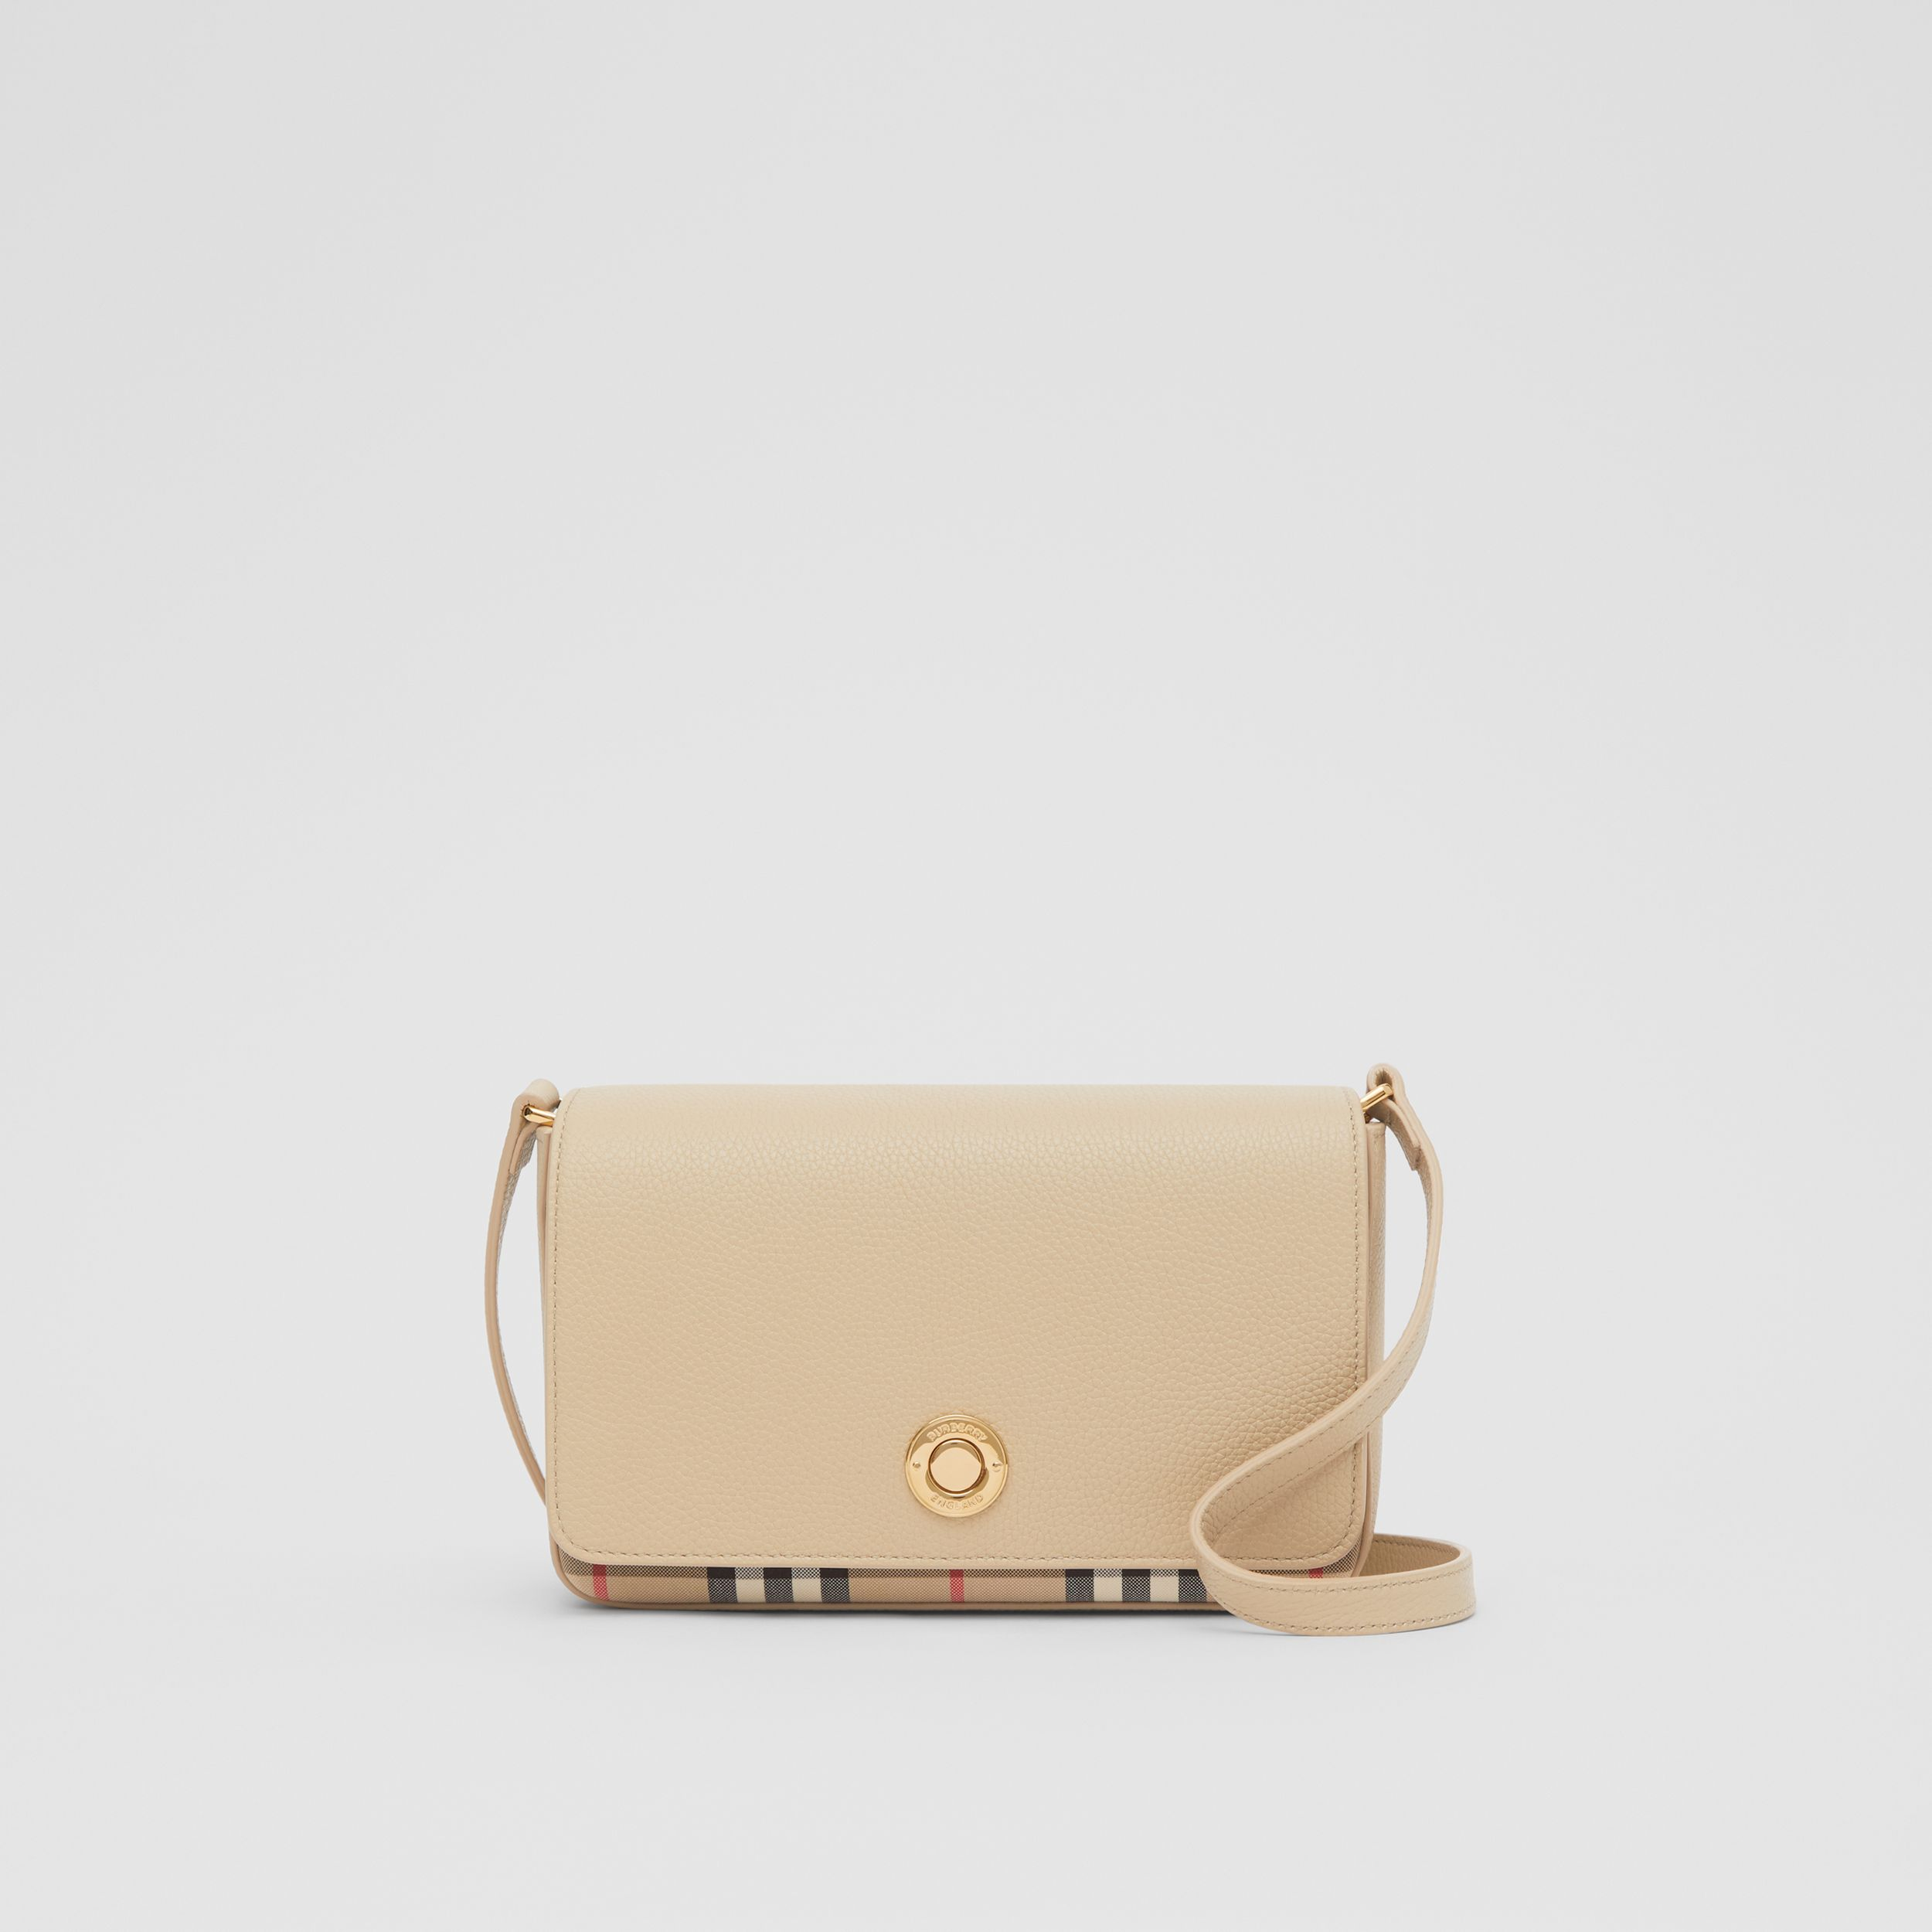 Small Leather and Vintage Check Crossbody Bag in Light Beige - Women | Burberry - 1